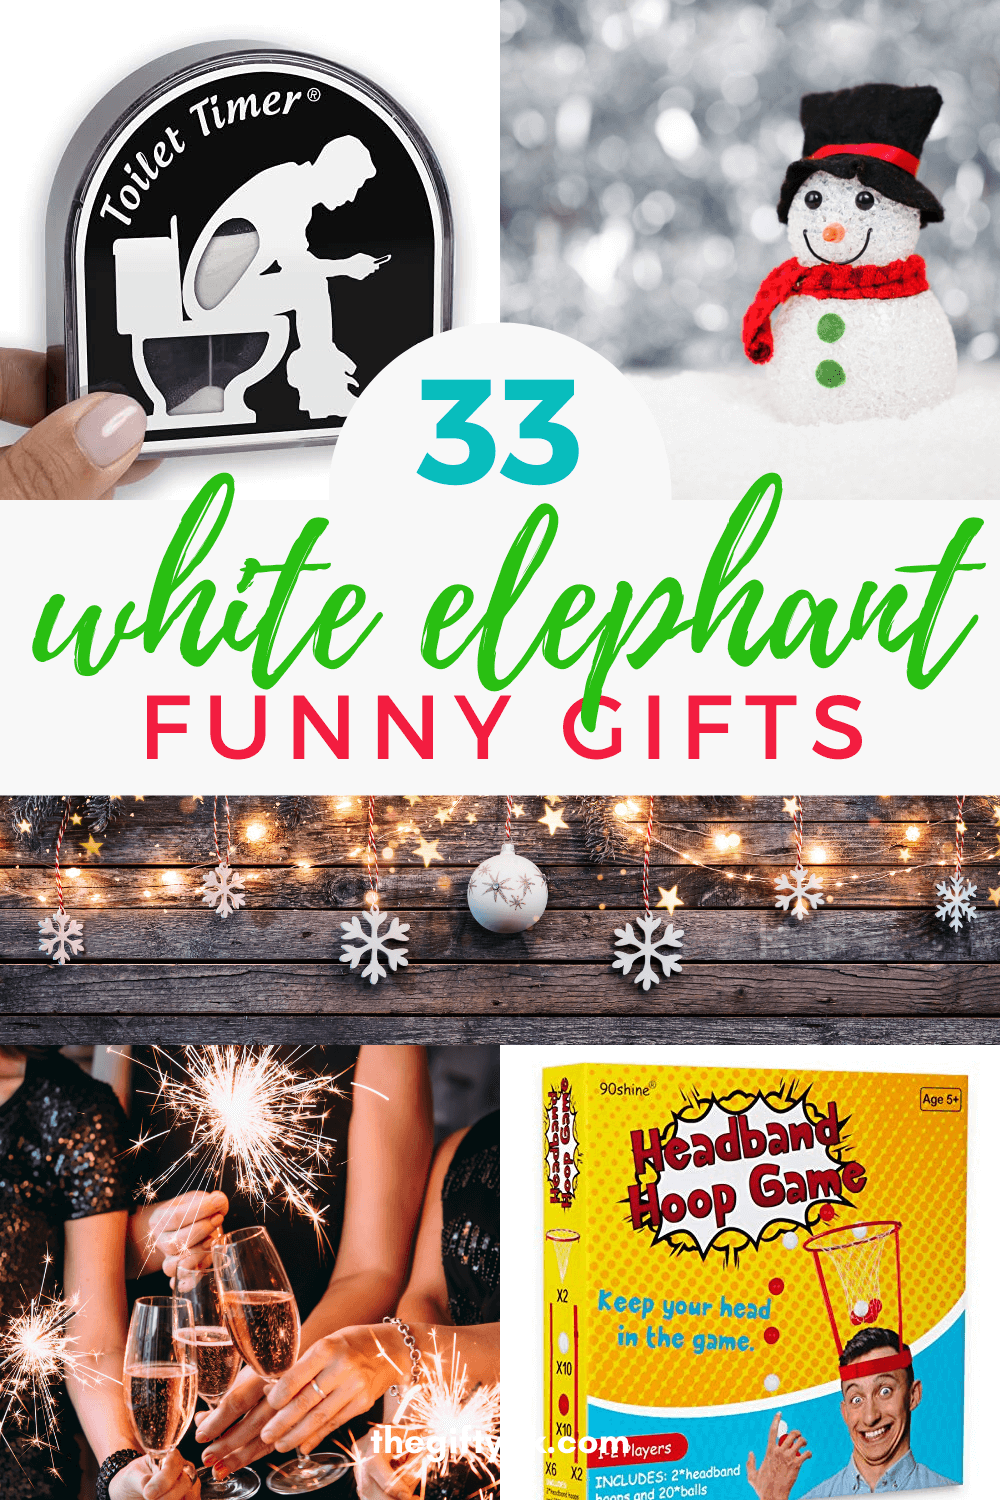 33 Funny White Elephant Gifts Hilarious Yankee Swap Gifts Inappropriate Dirty Santa Gifts